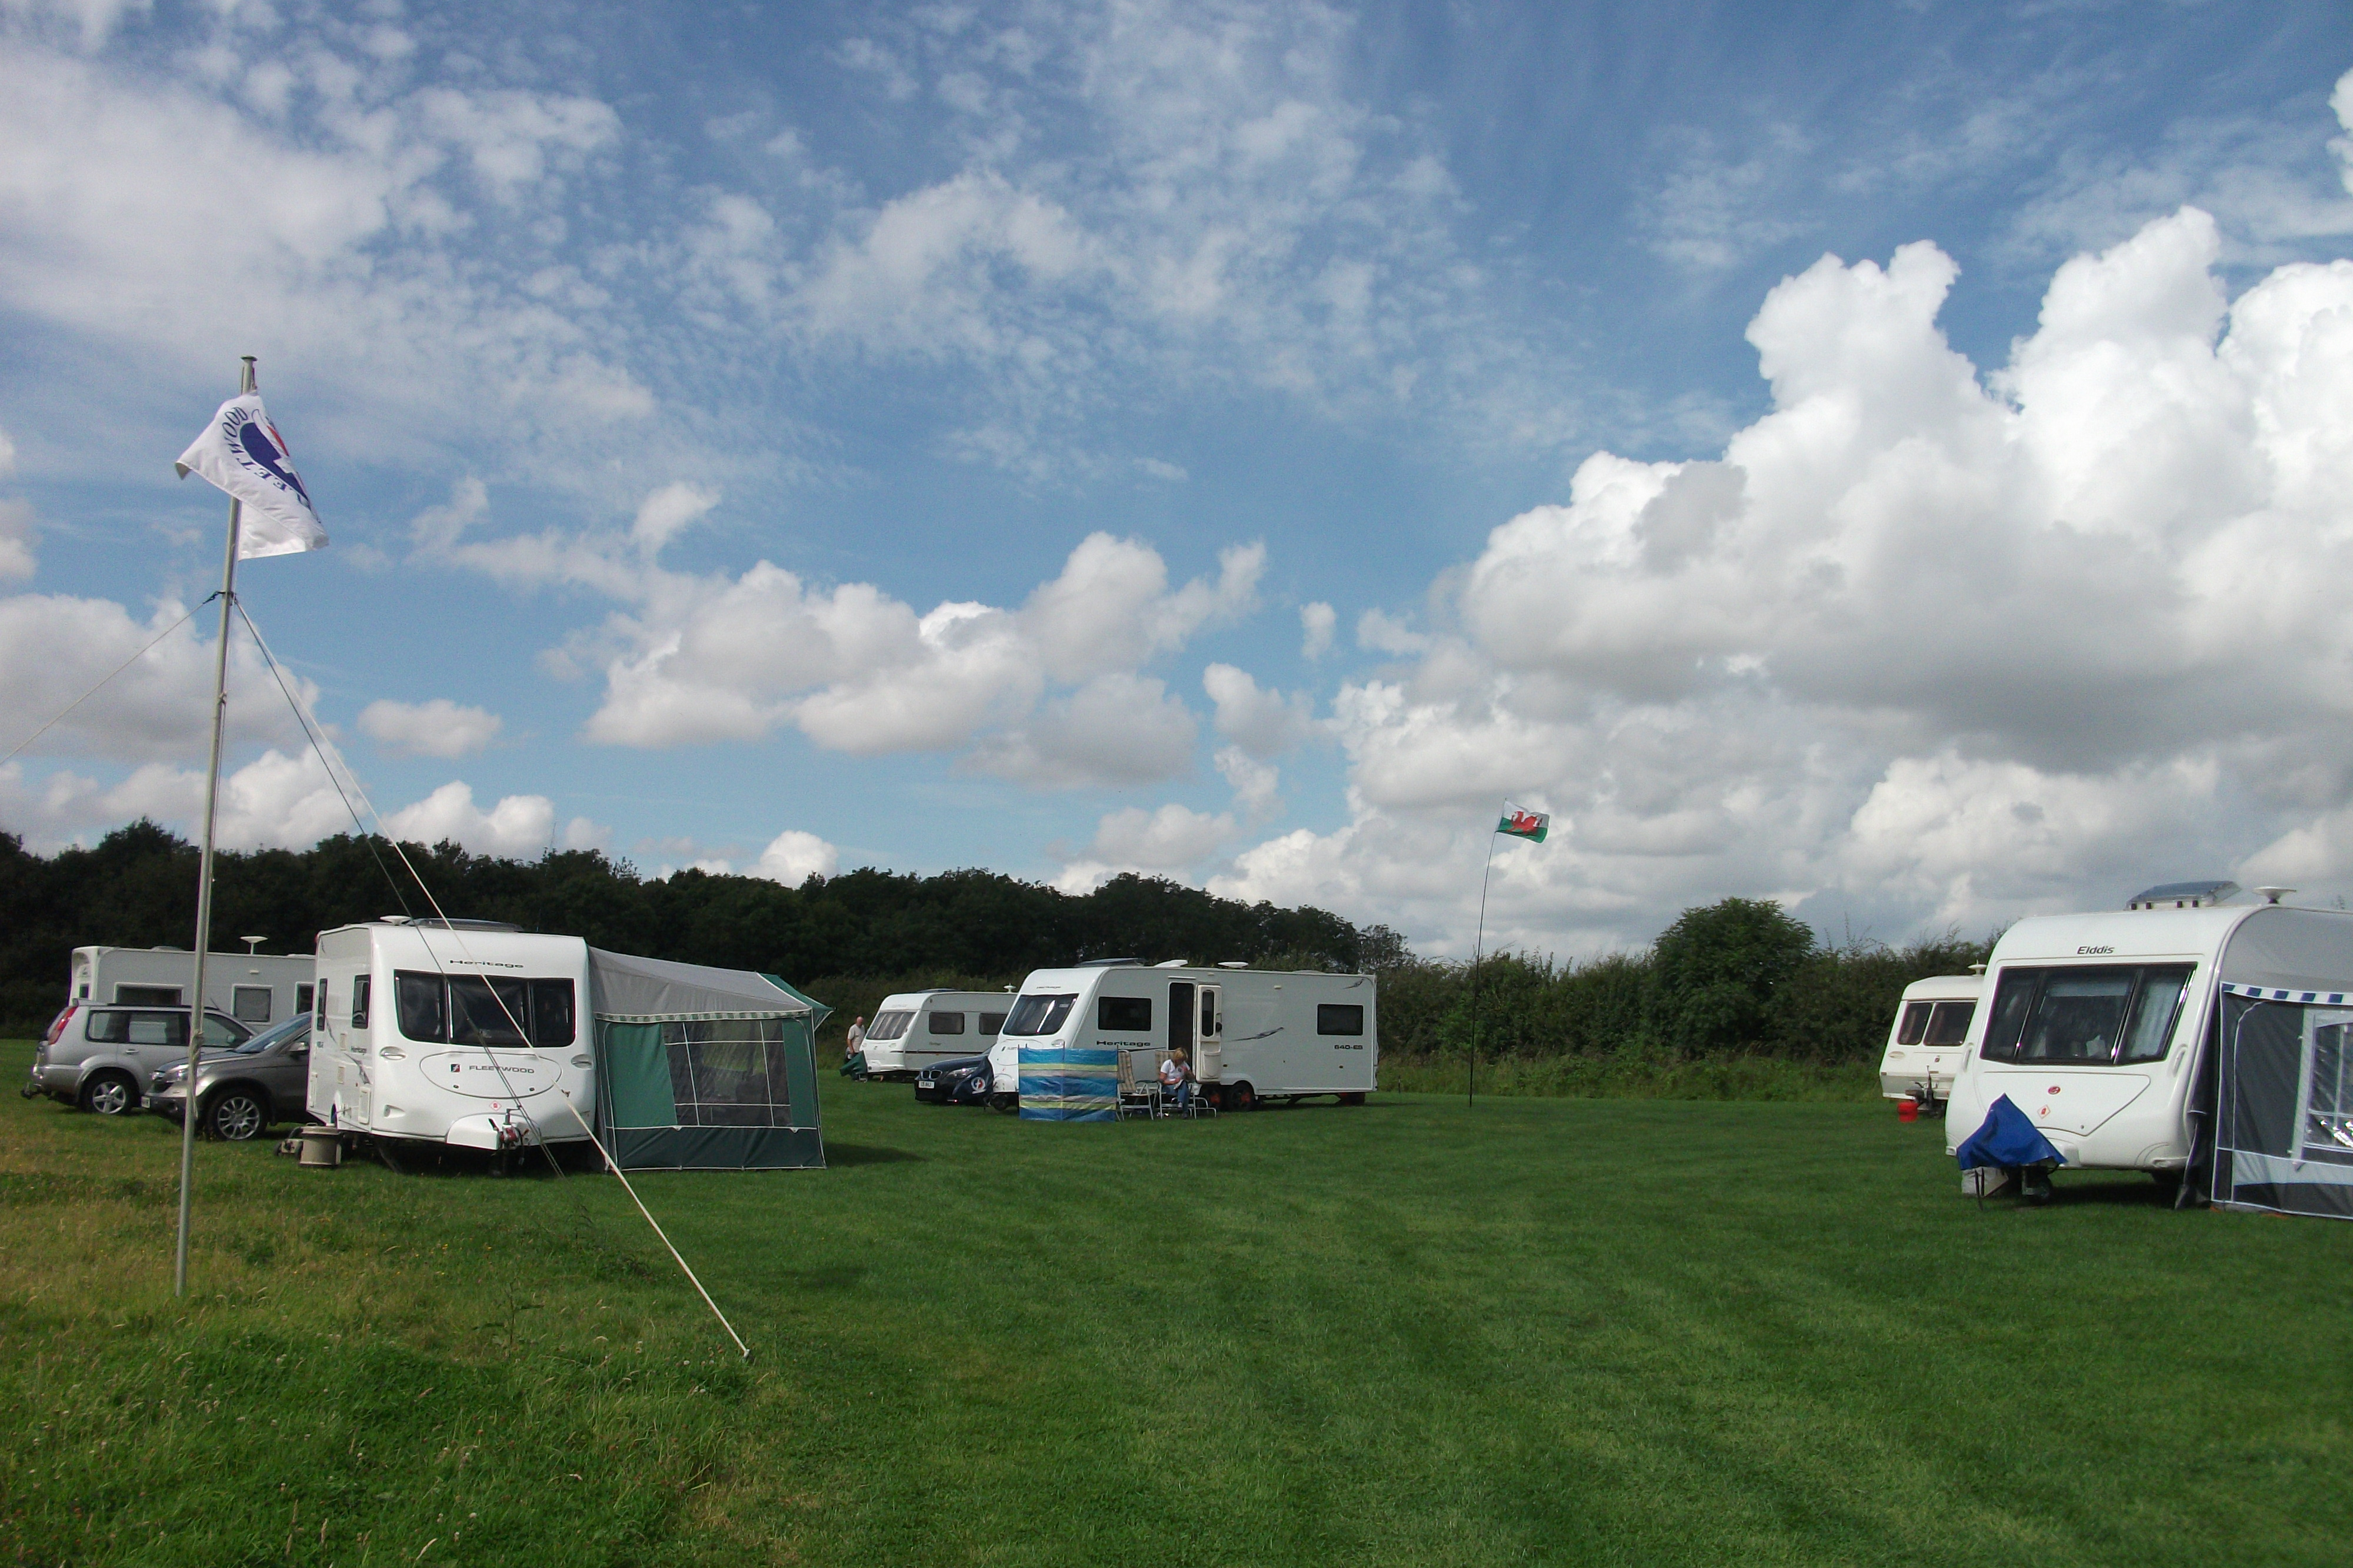 13. Clouds over the rally field at Metheringham